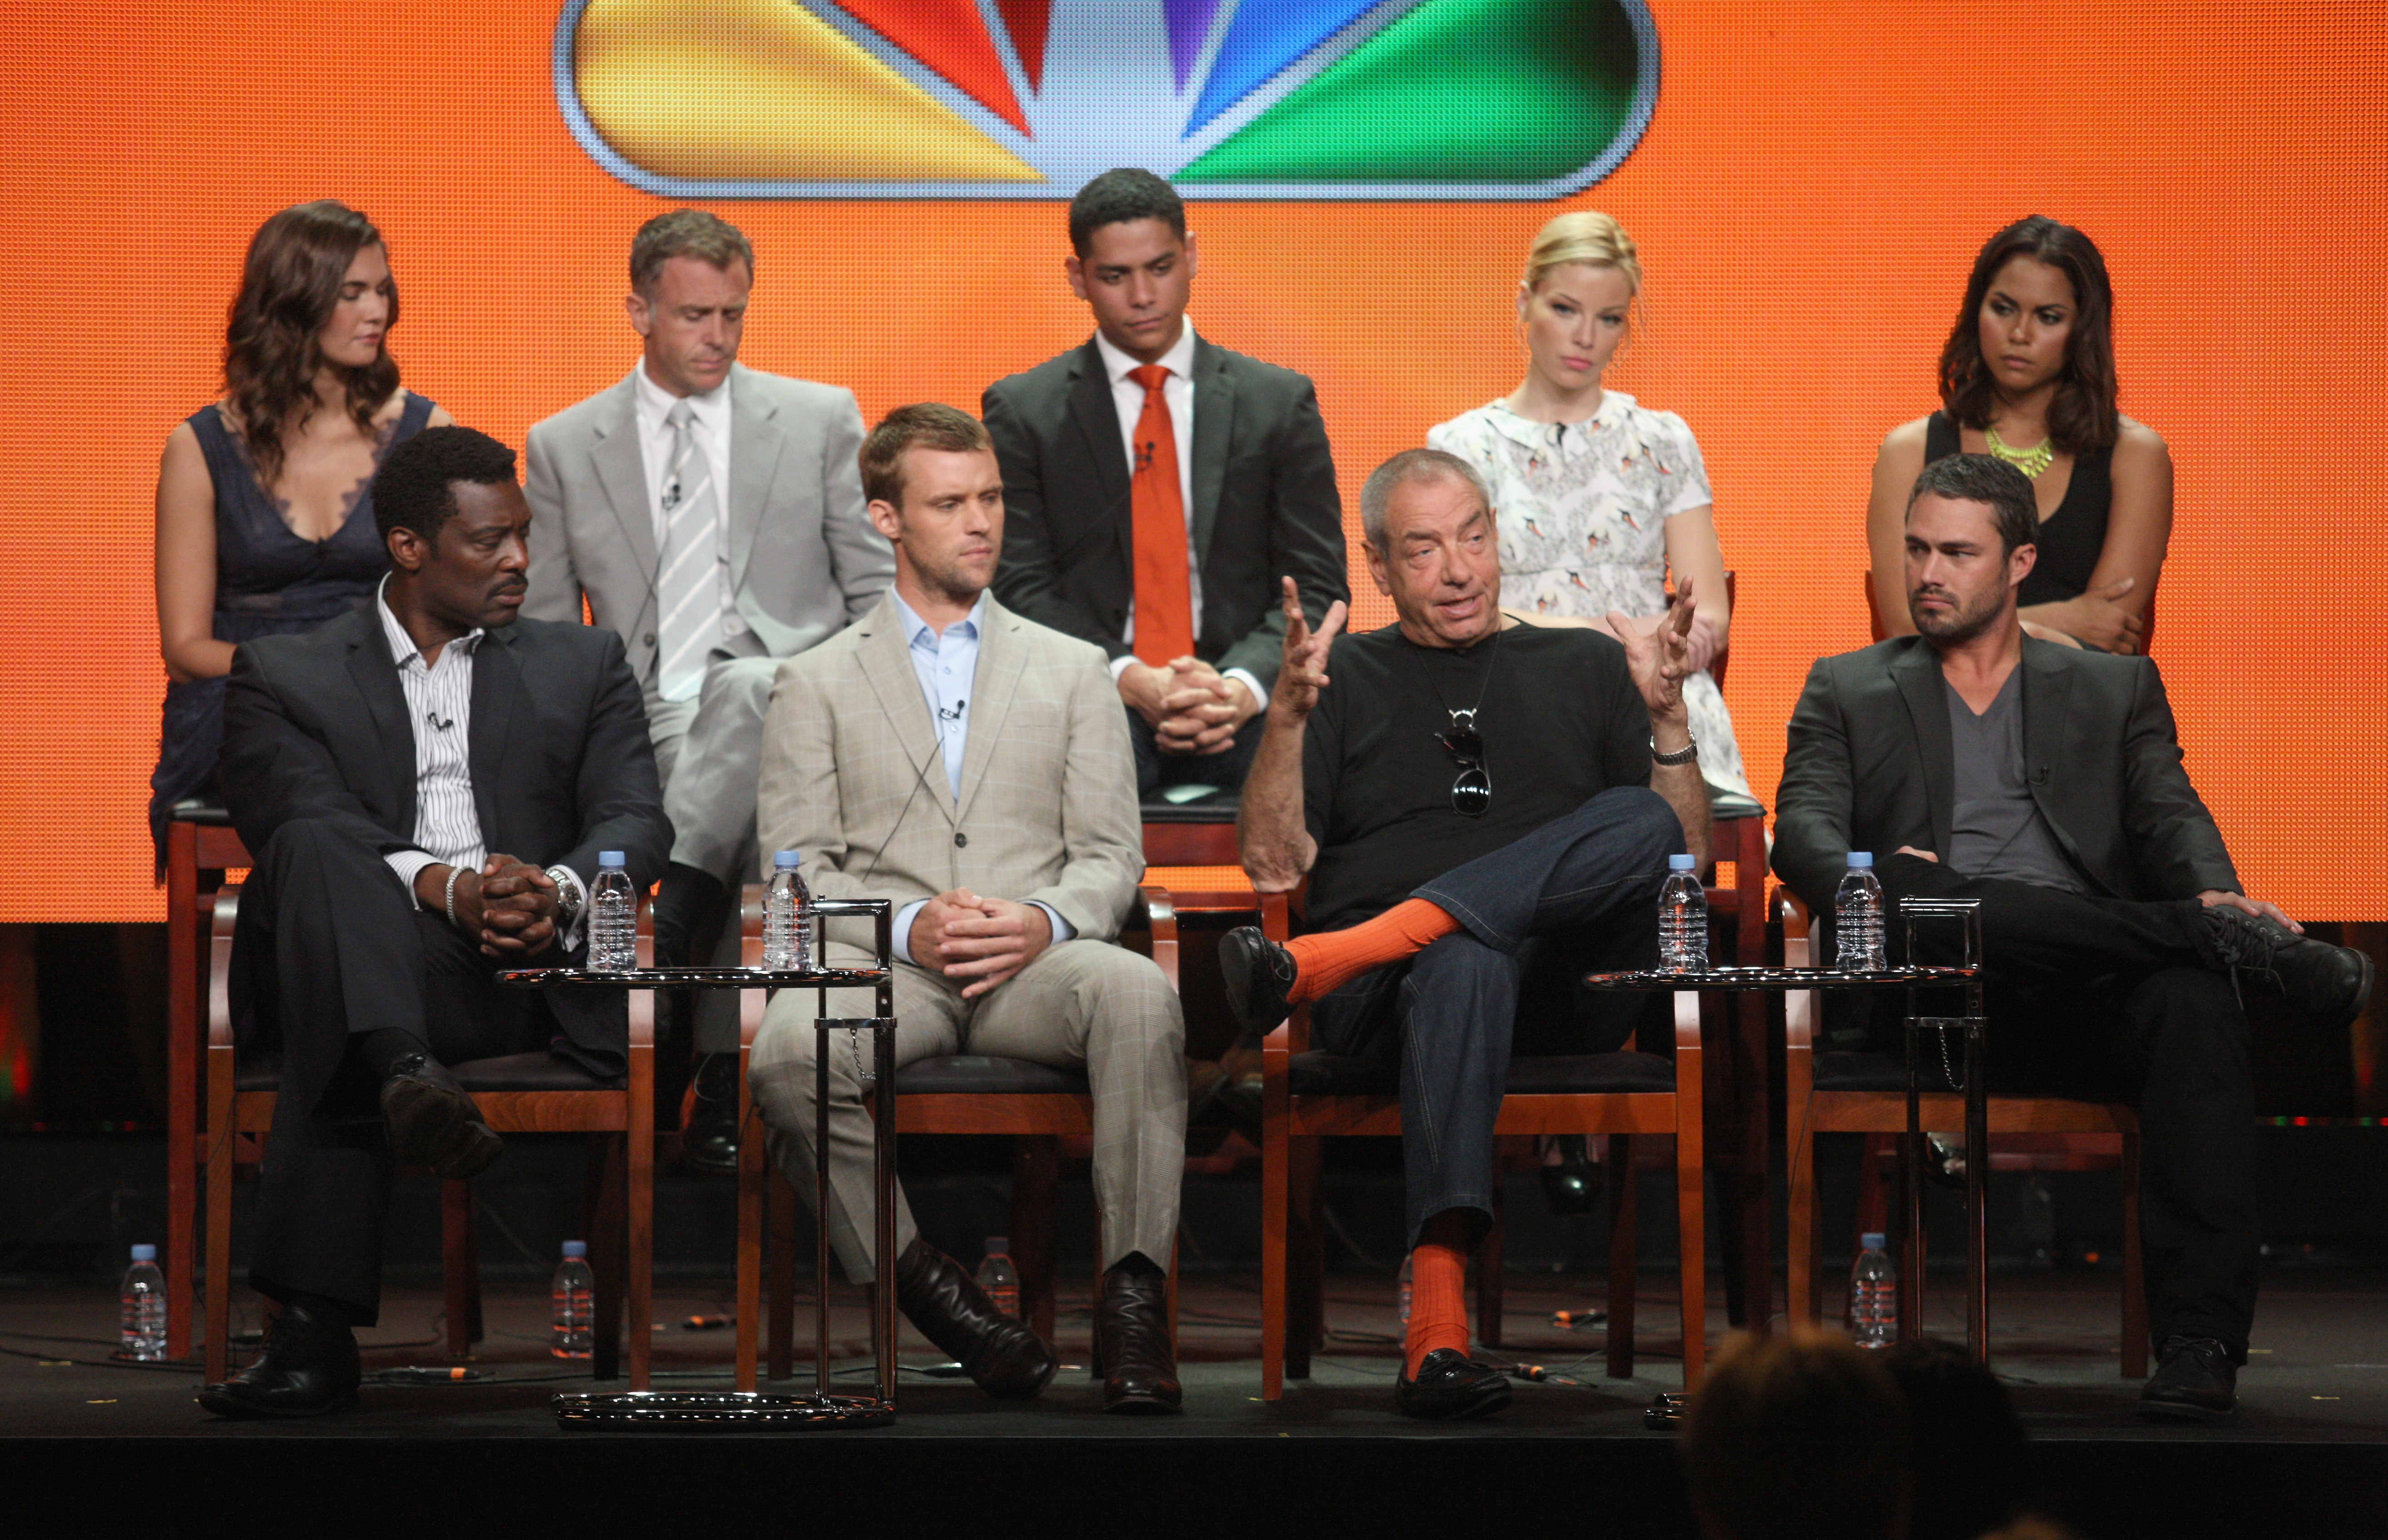 Teri Reeves, David Eigenberg, Charlie Barnett and Lauren German, Eamonn Walker, Jesse Spencer, executive producer Dick Wolf and Taylor Kinney spoke to the press about Chicago Fire at NBC's 2012 Summer TCA press tour.